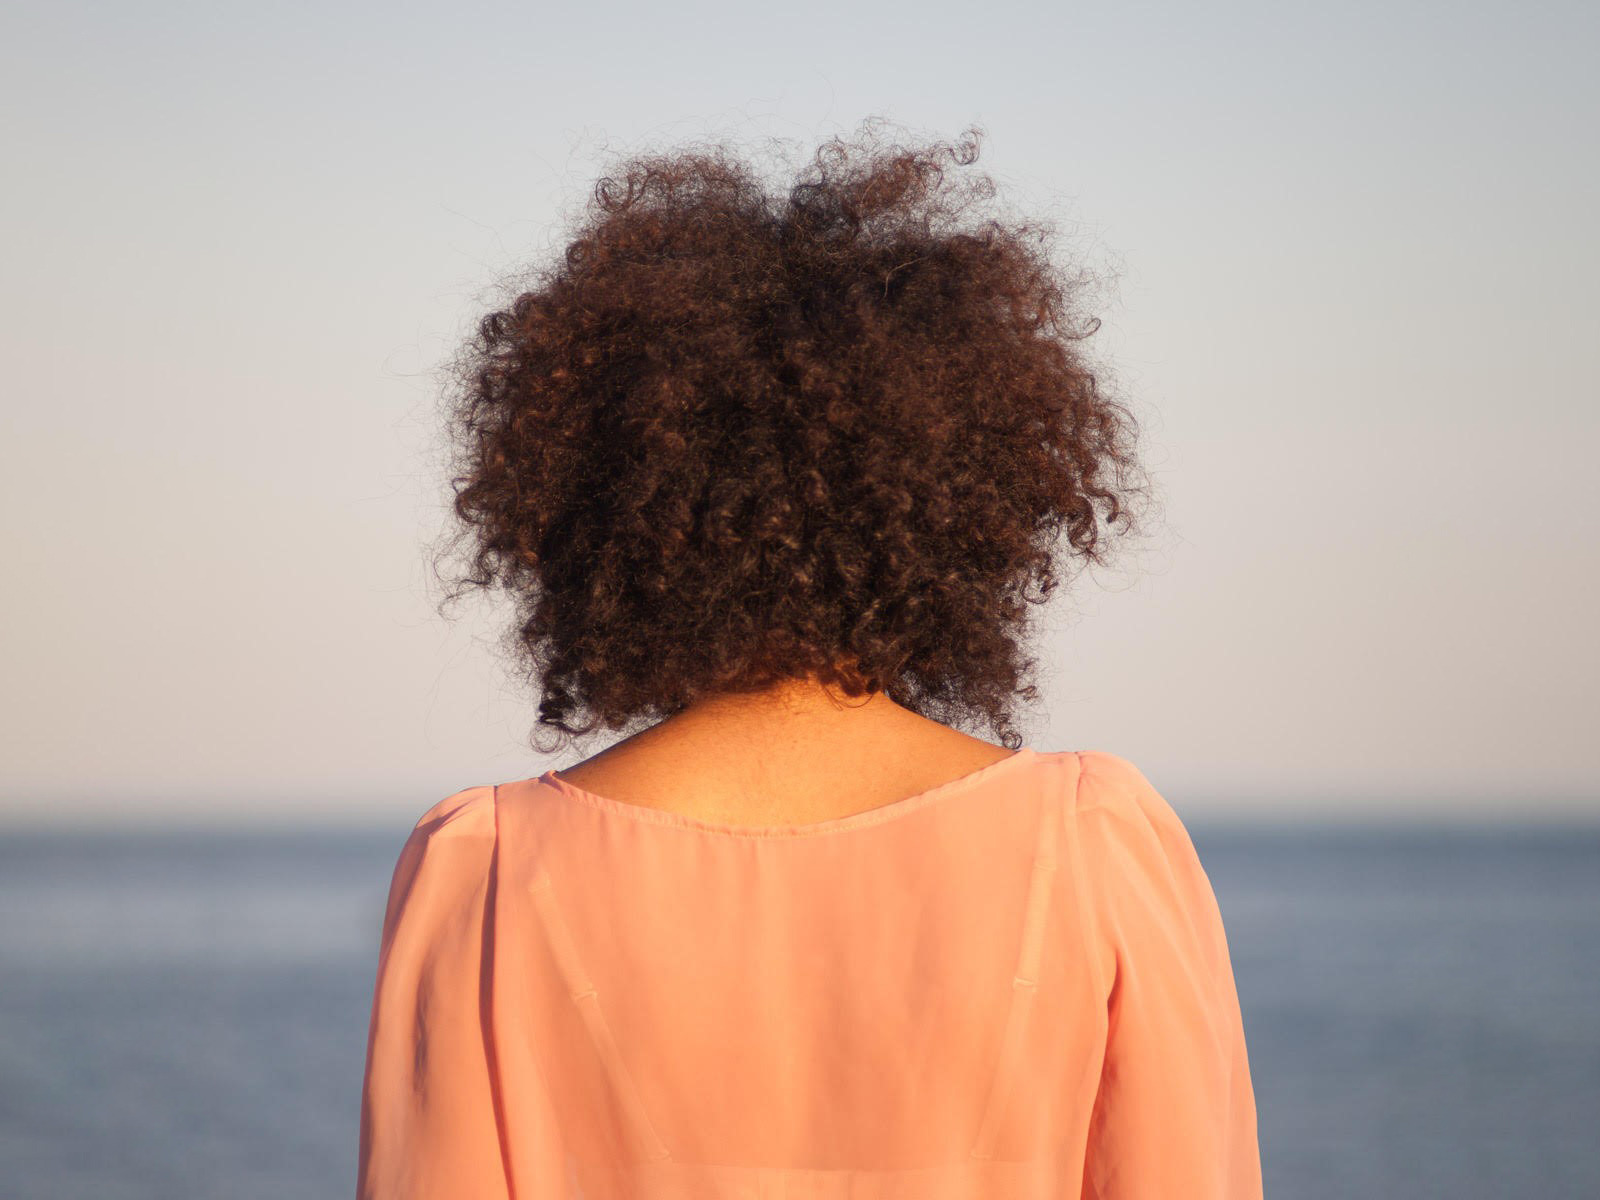 Cloudless image - back of woman staring off into the distance.